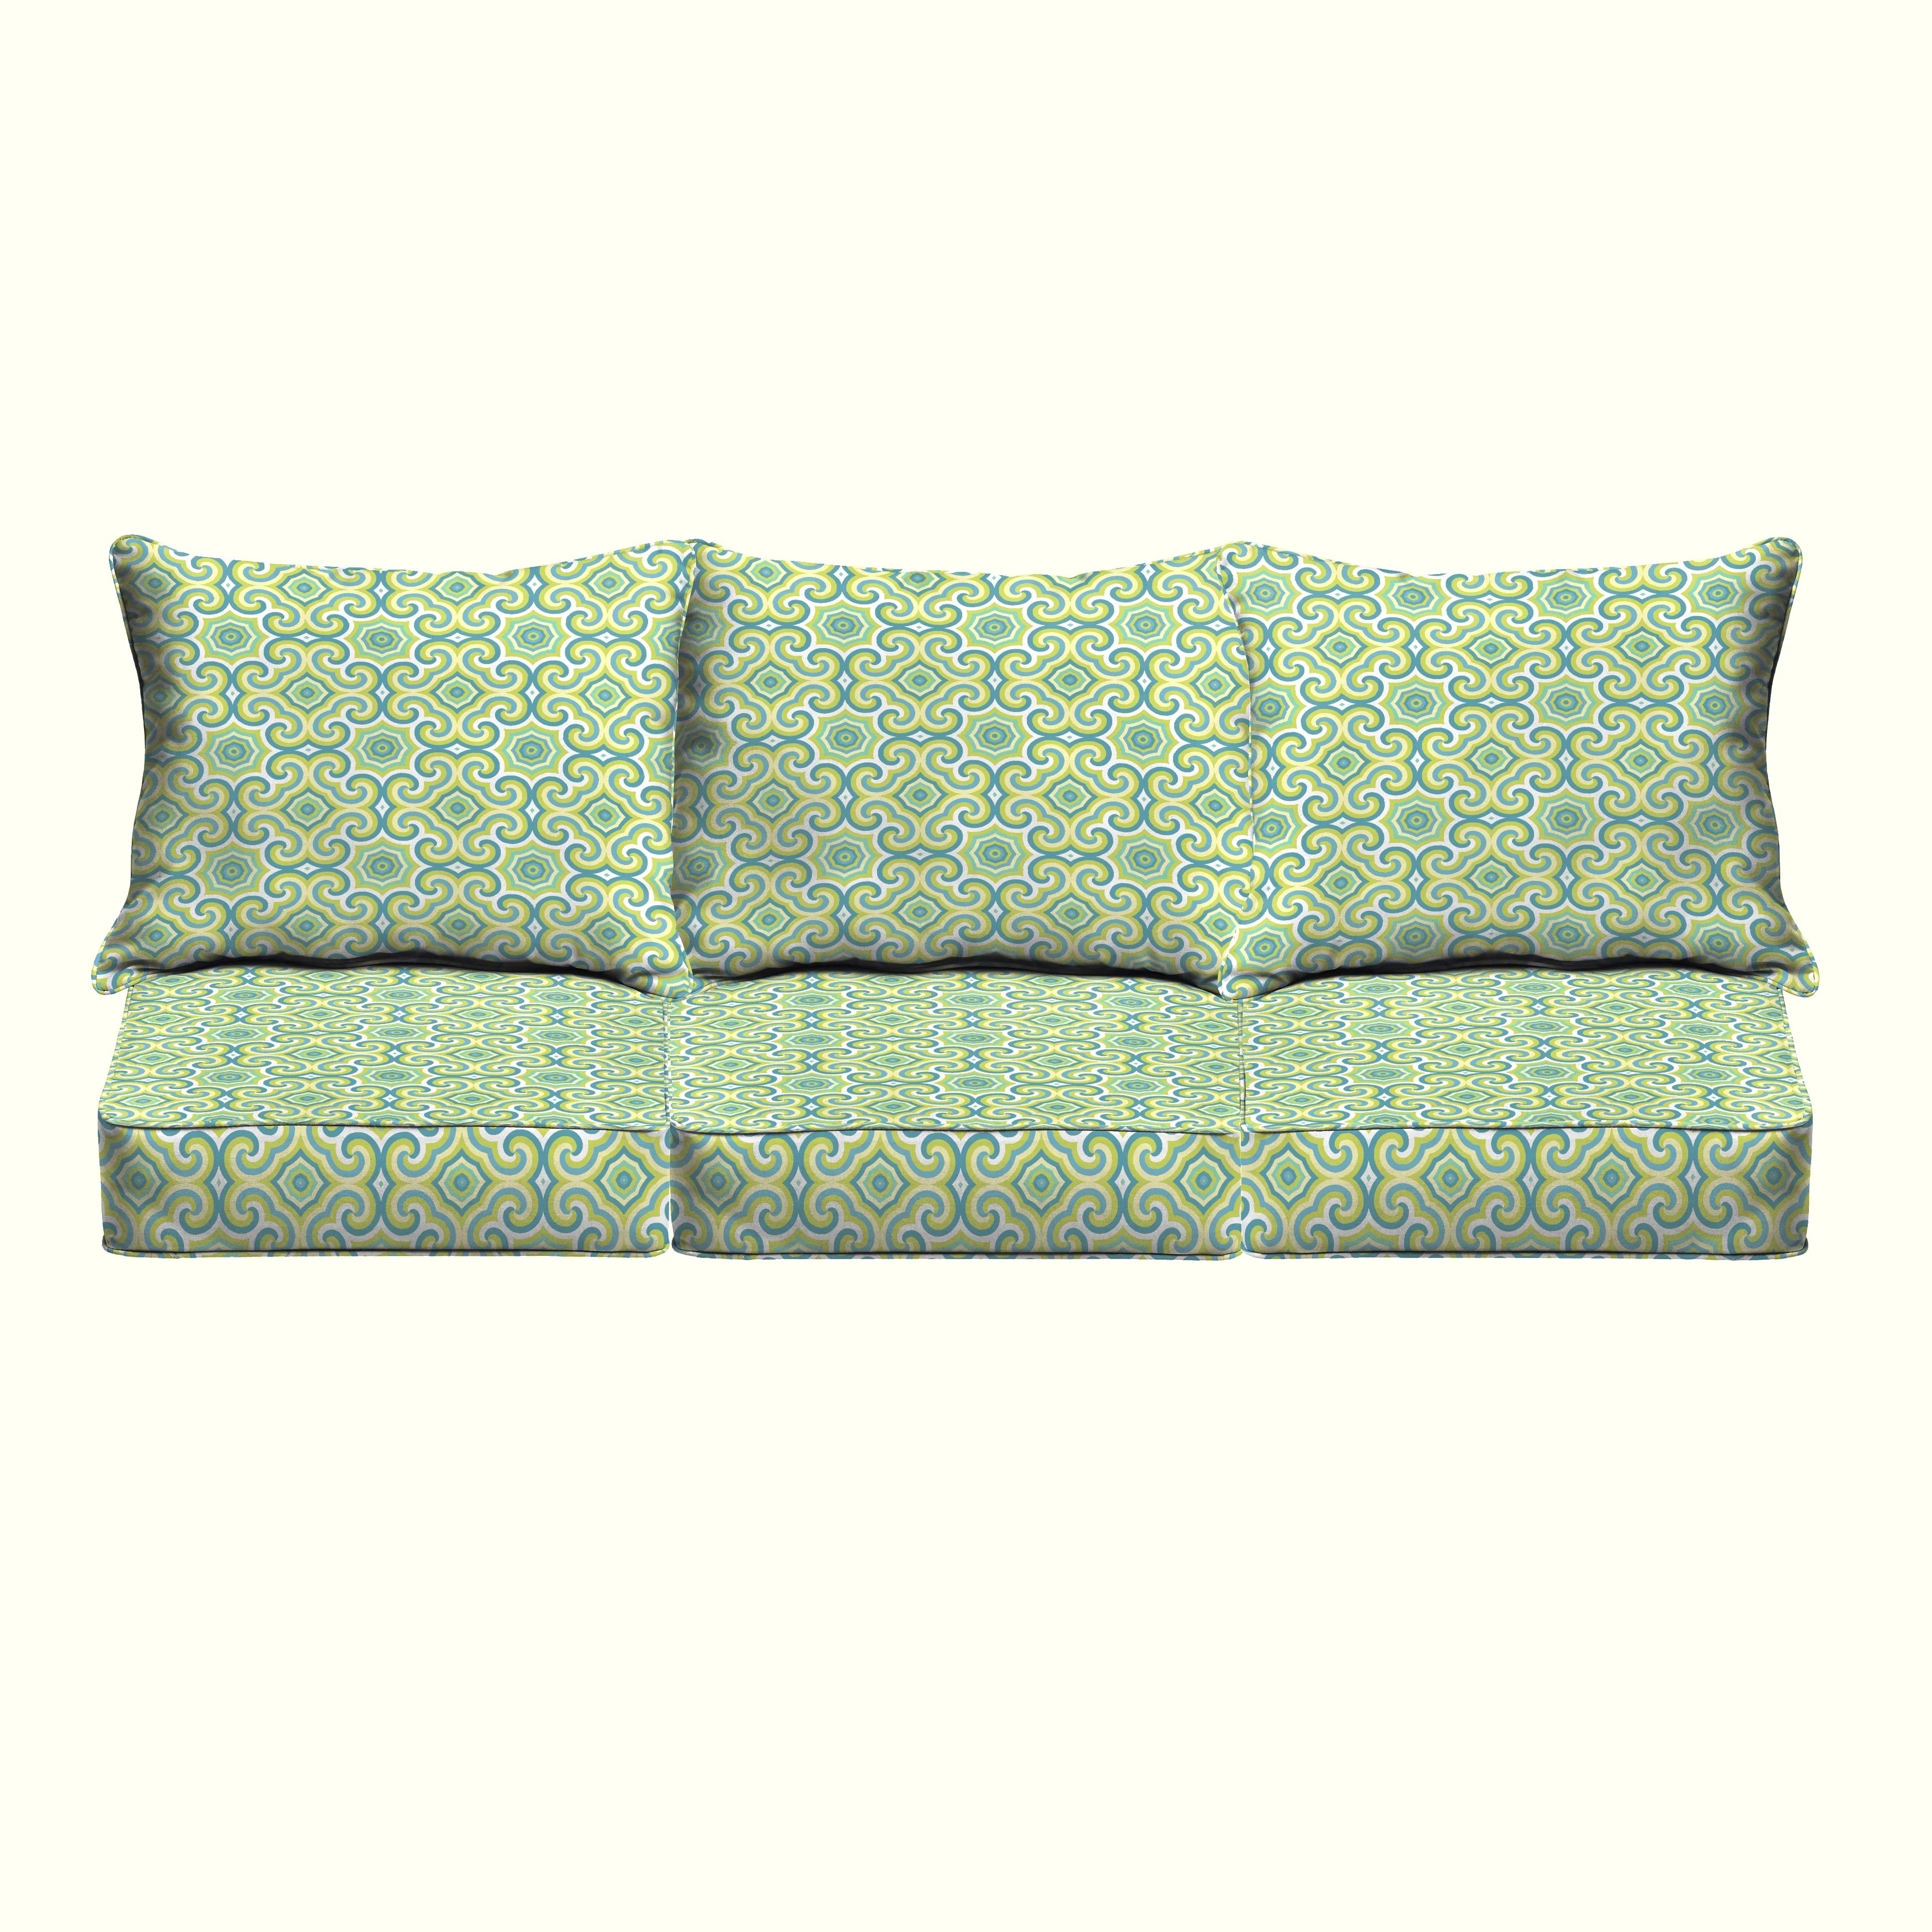 Shop Oliver Lime Green Aqua Indoor Outdoor Corded Pillow And Cushion 6 Pc Sofa Set Overstock 15029430